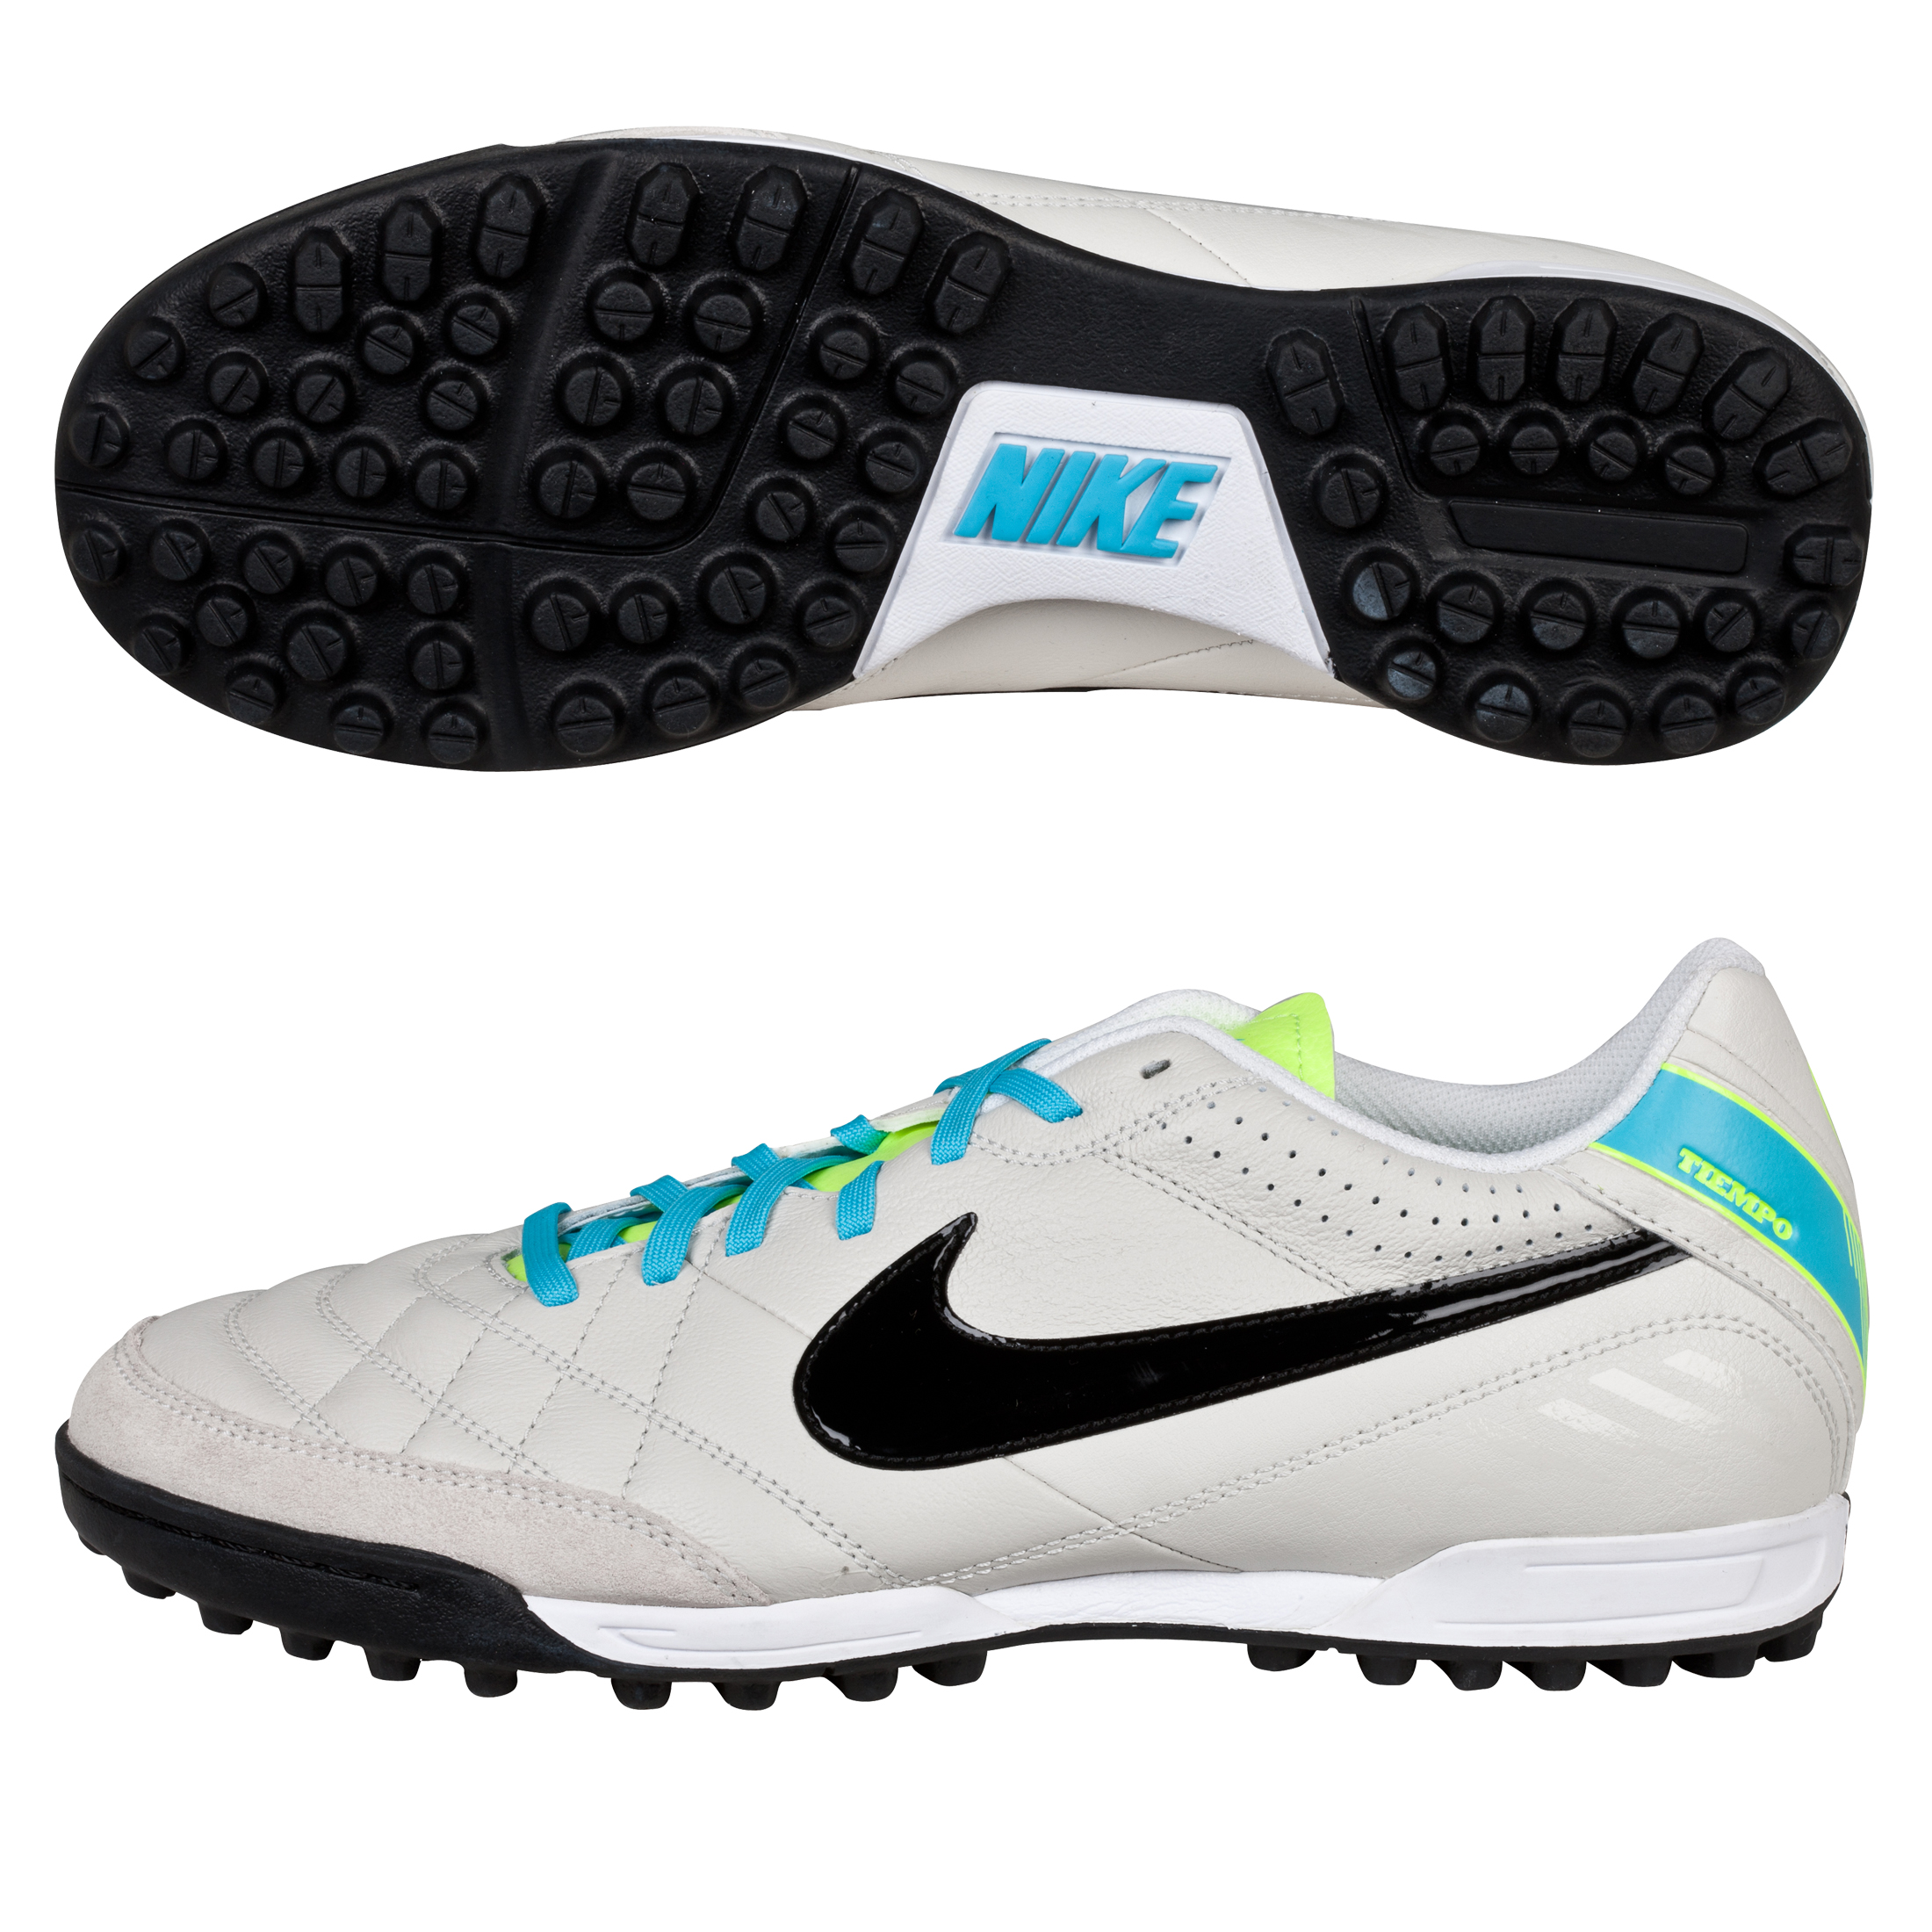 Nike Tiempo Natural IV Astroturf Trainers Lt Grey